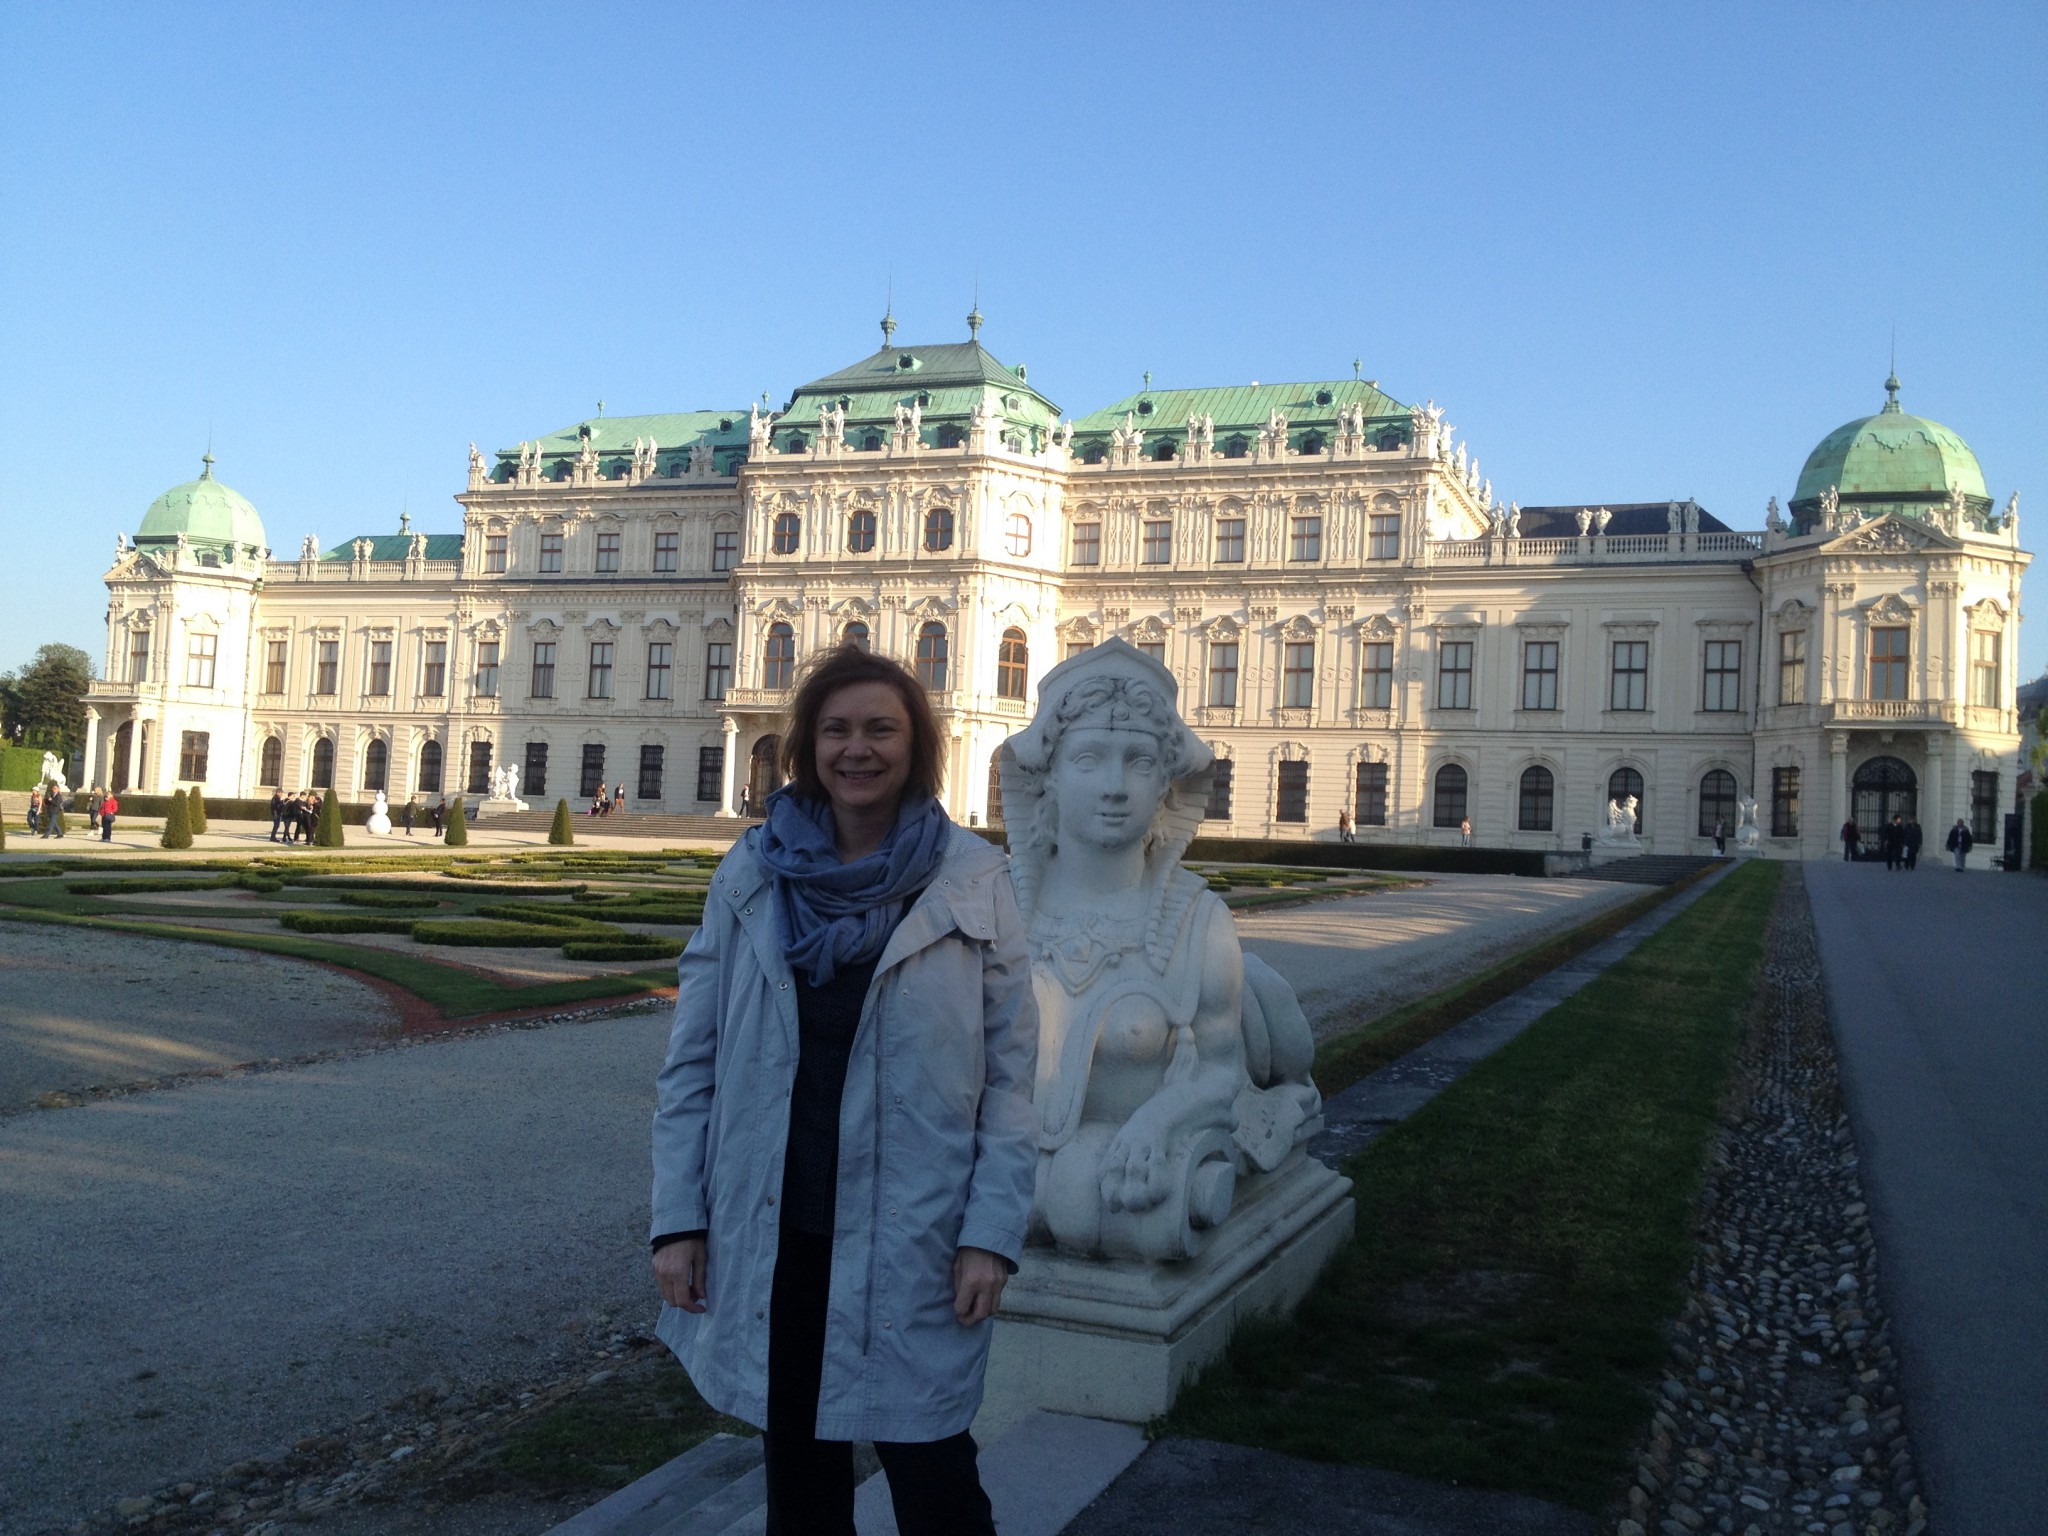 The grand Belvedere Palace